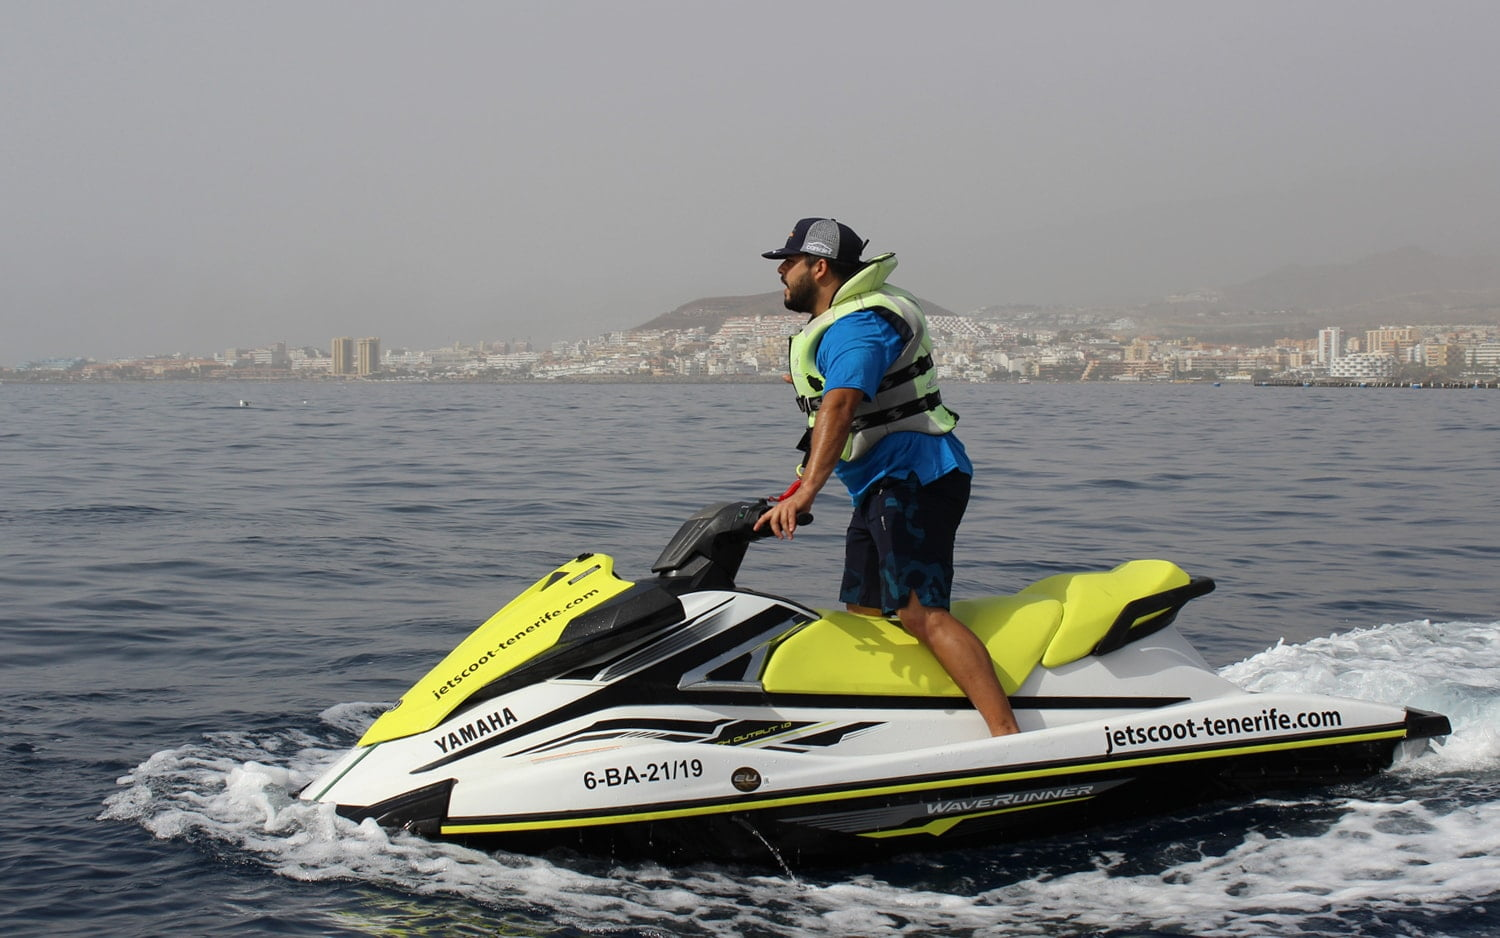 Great Jet Ski Instructors in Tenerife